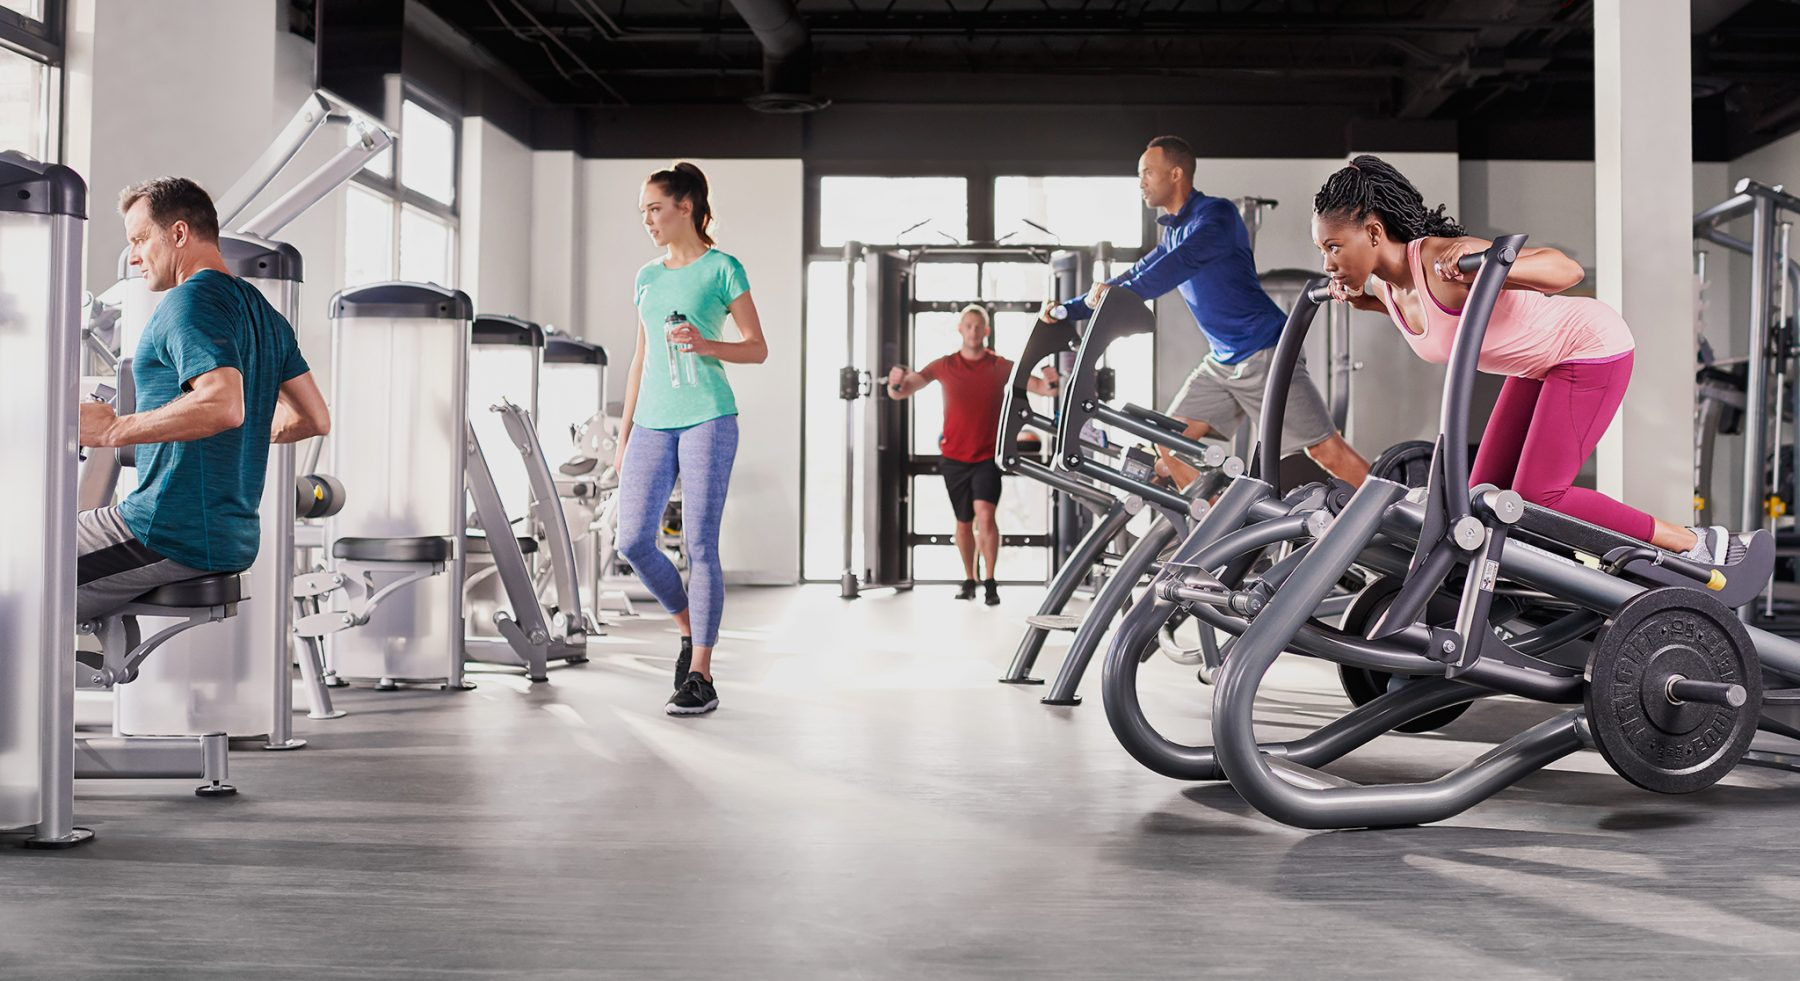 This is one of the health clubs with TRUE Fitness commercial equipment.